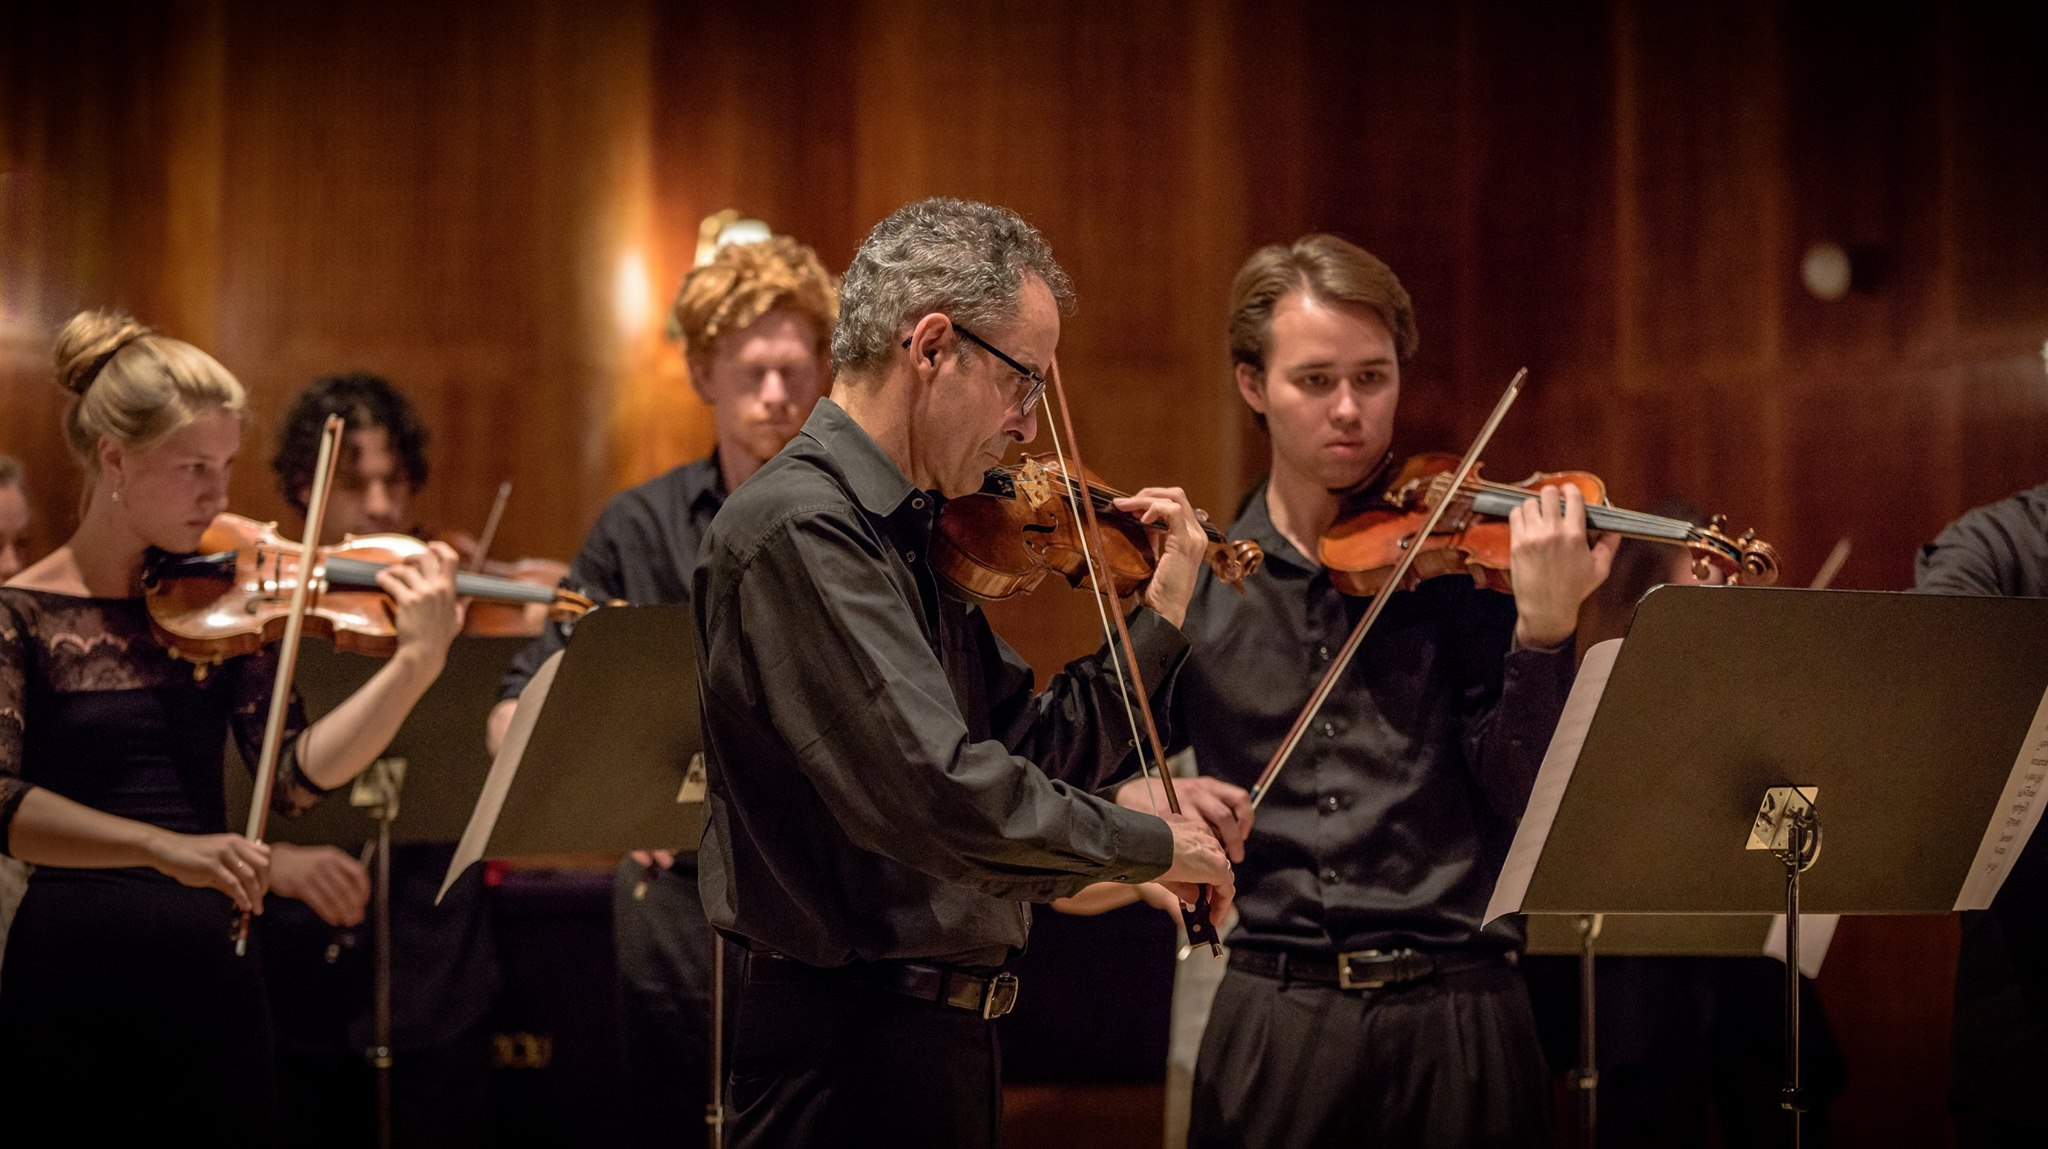 Faculty Member Eugene Drucker (Emerson String Quartet) performs with the New Music for Strings Chamber Orchestra at The Royal Danish Academy of Music Copenhagen. —NMFS 2016